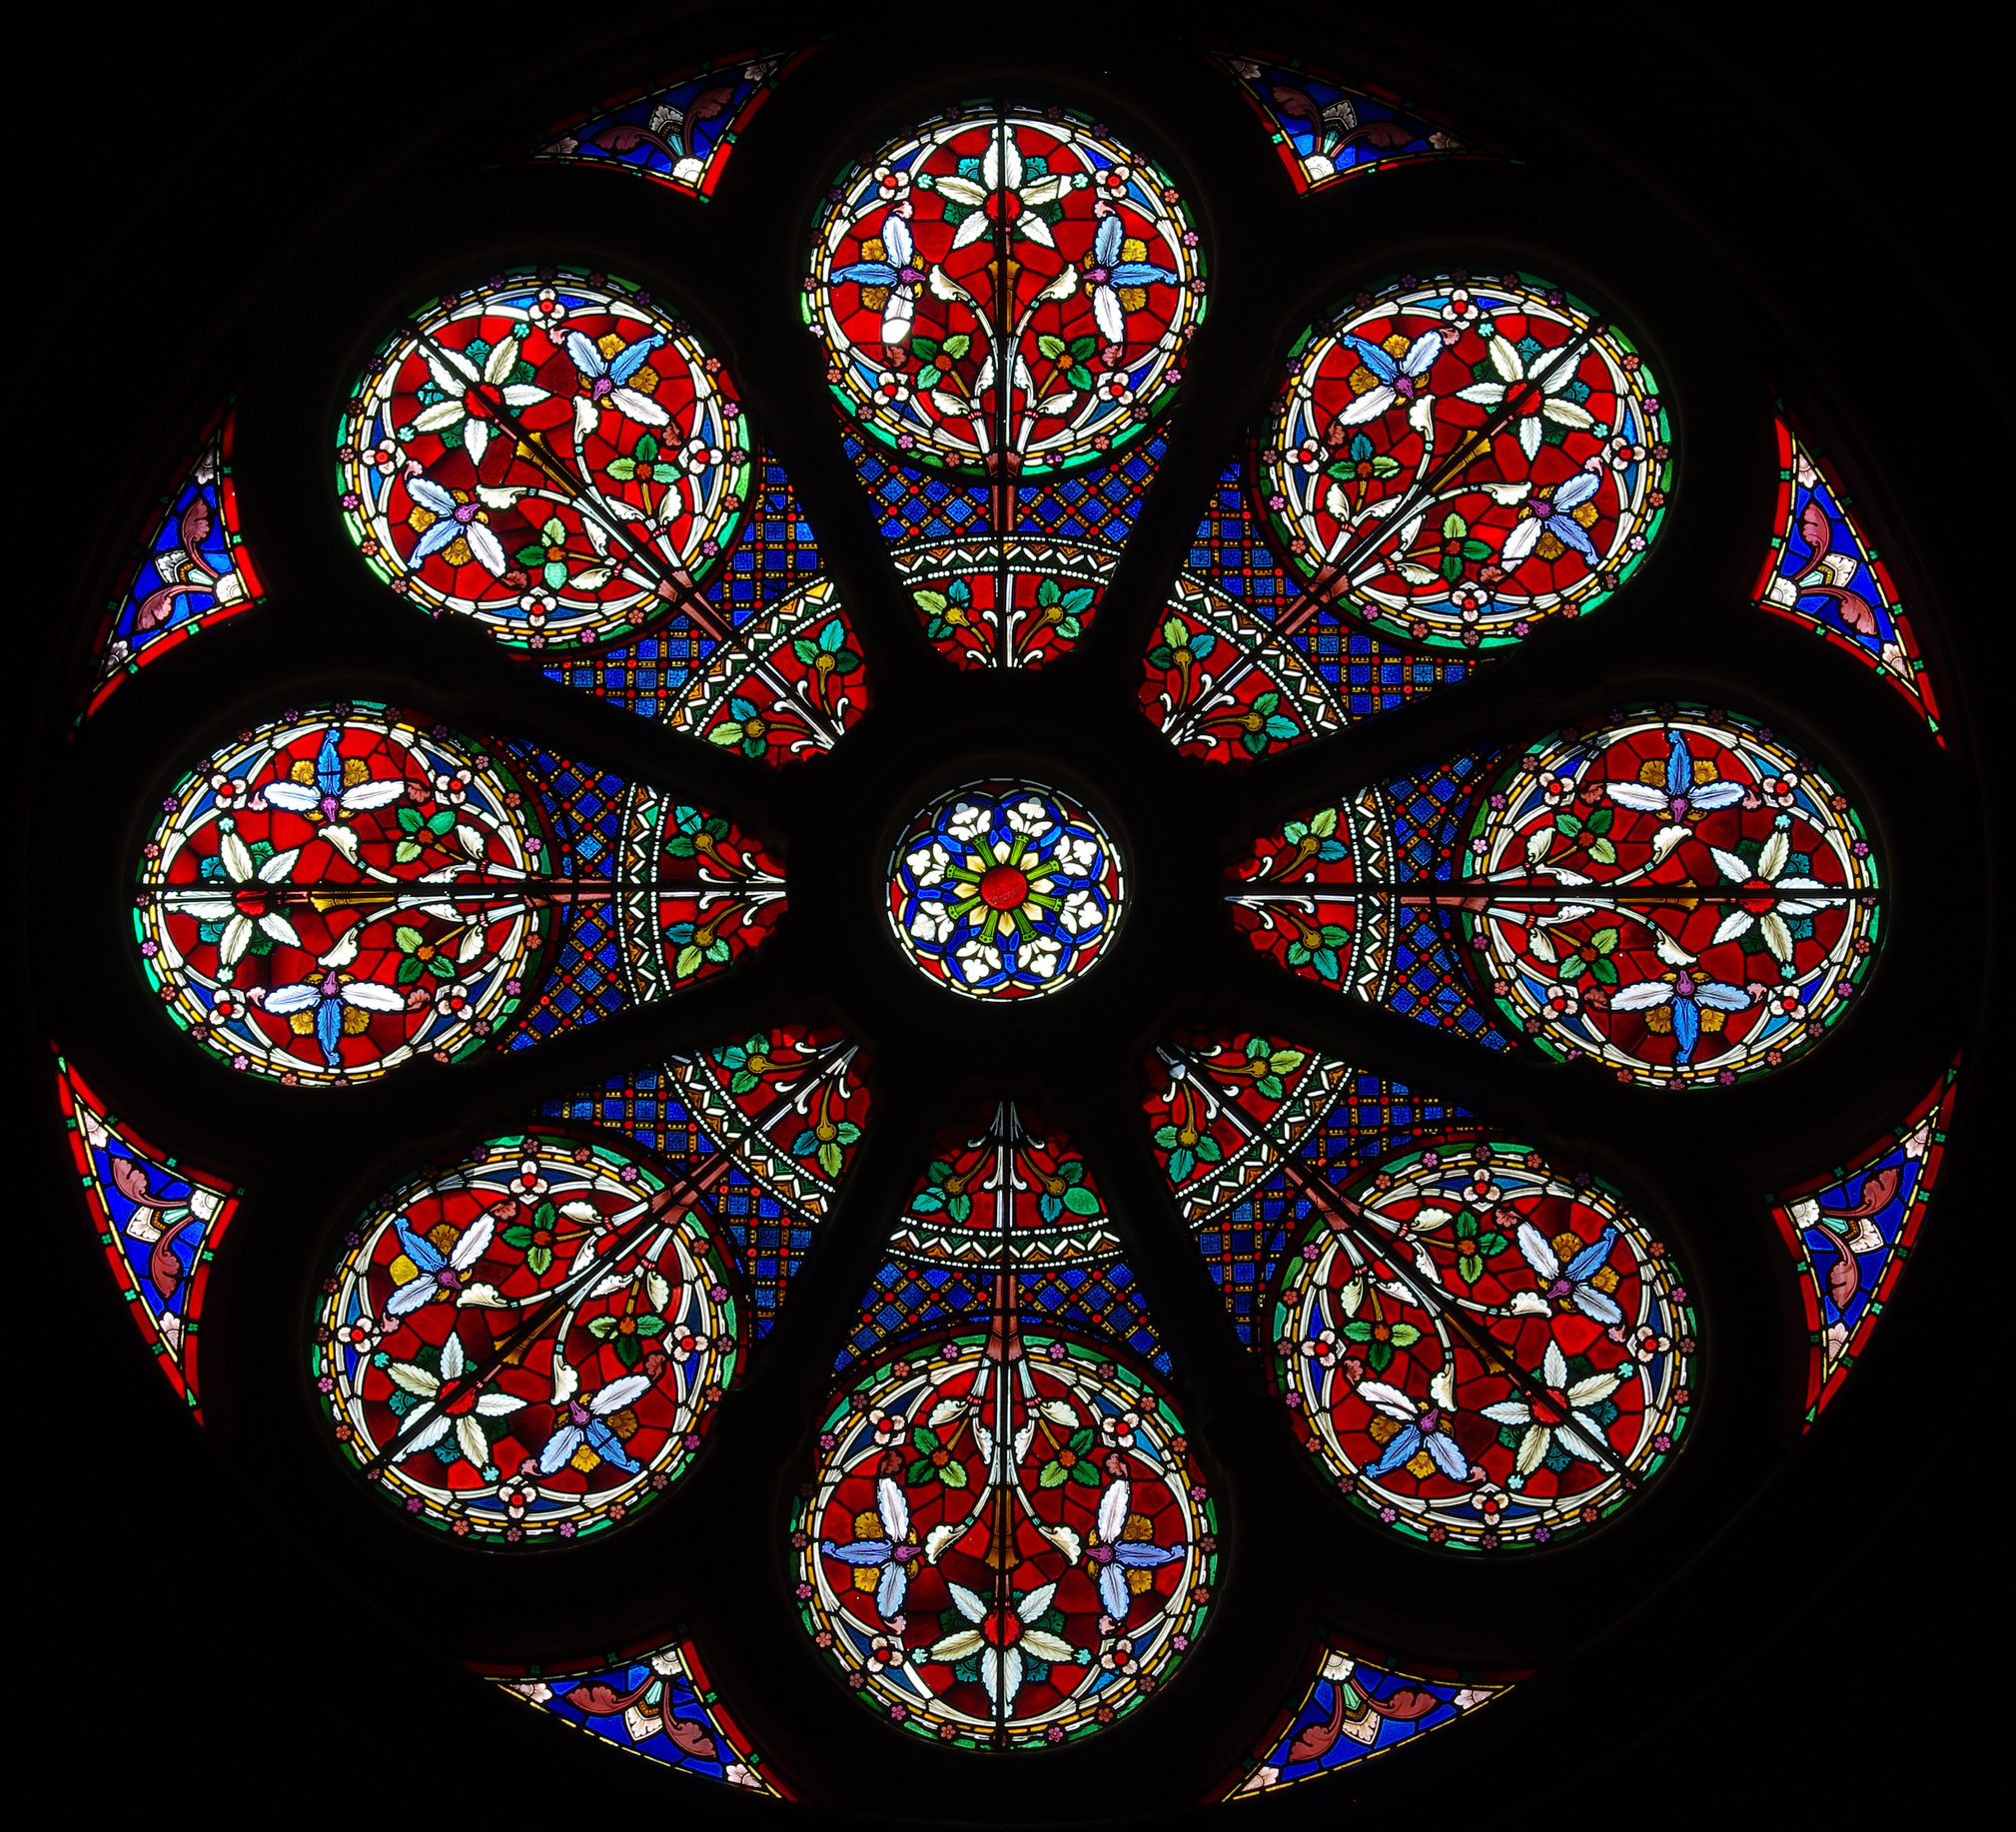 stained glass window in church @ Howgill / fotolia com